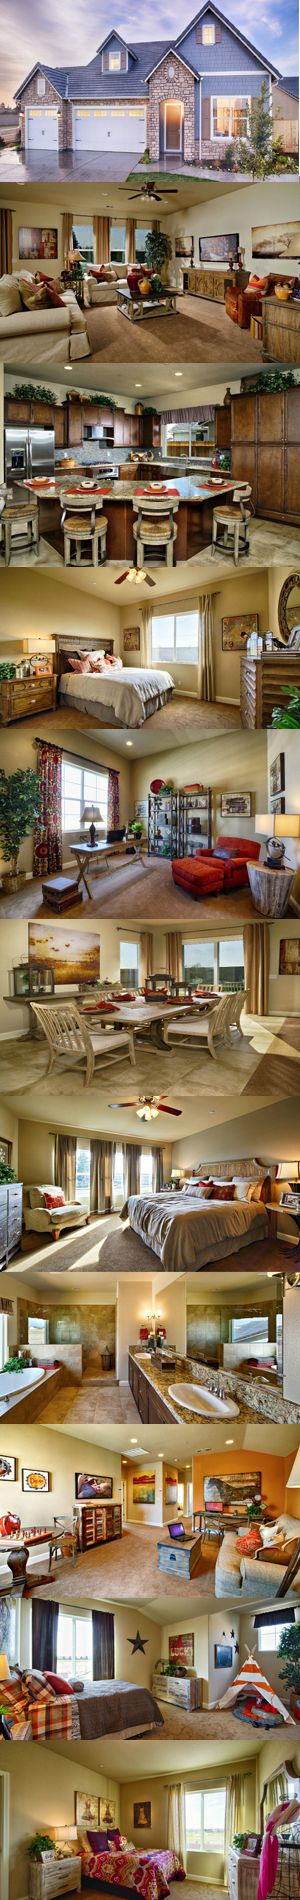 Best decorated model homes